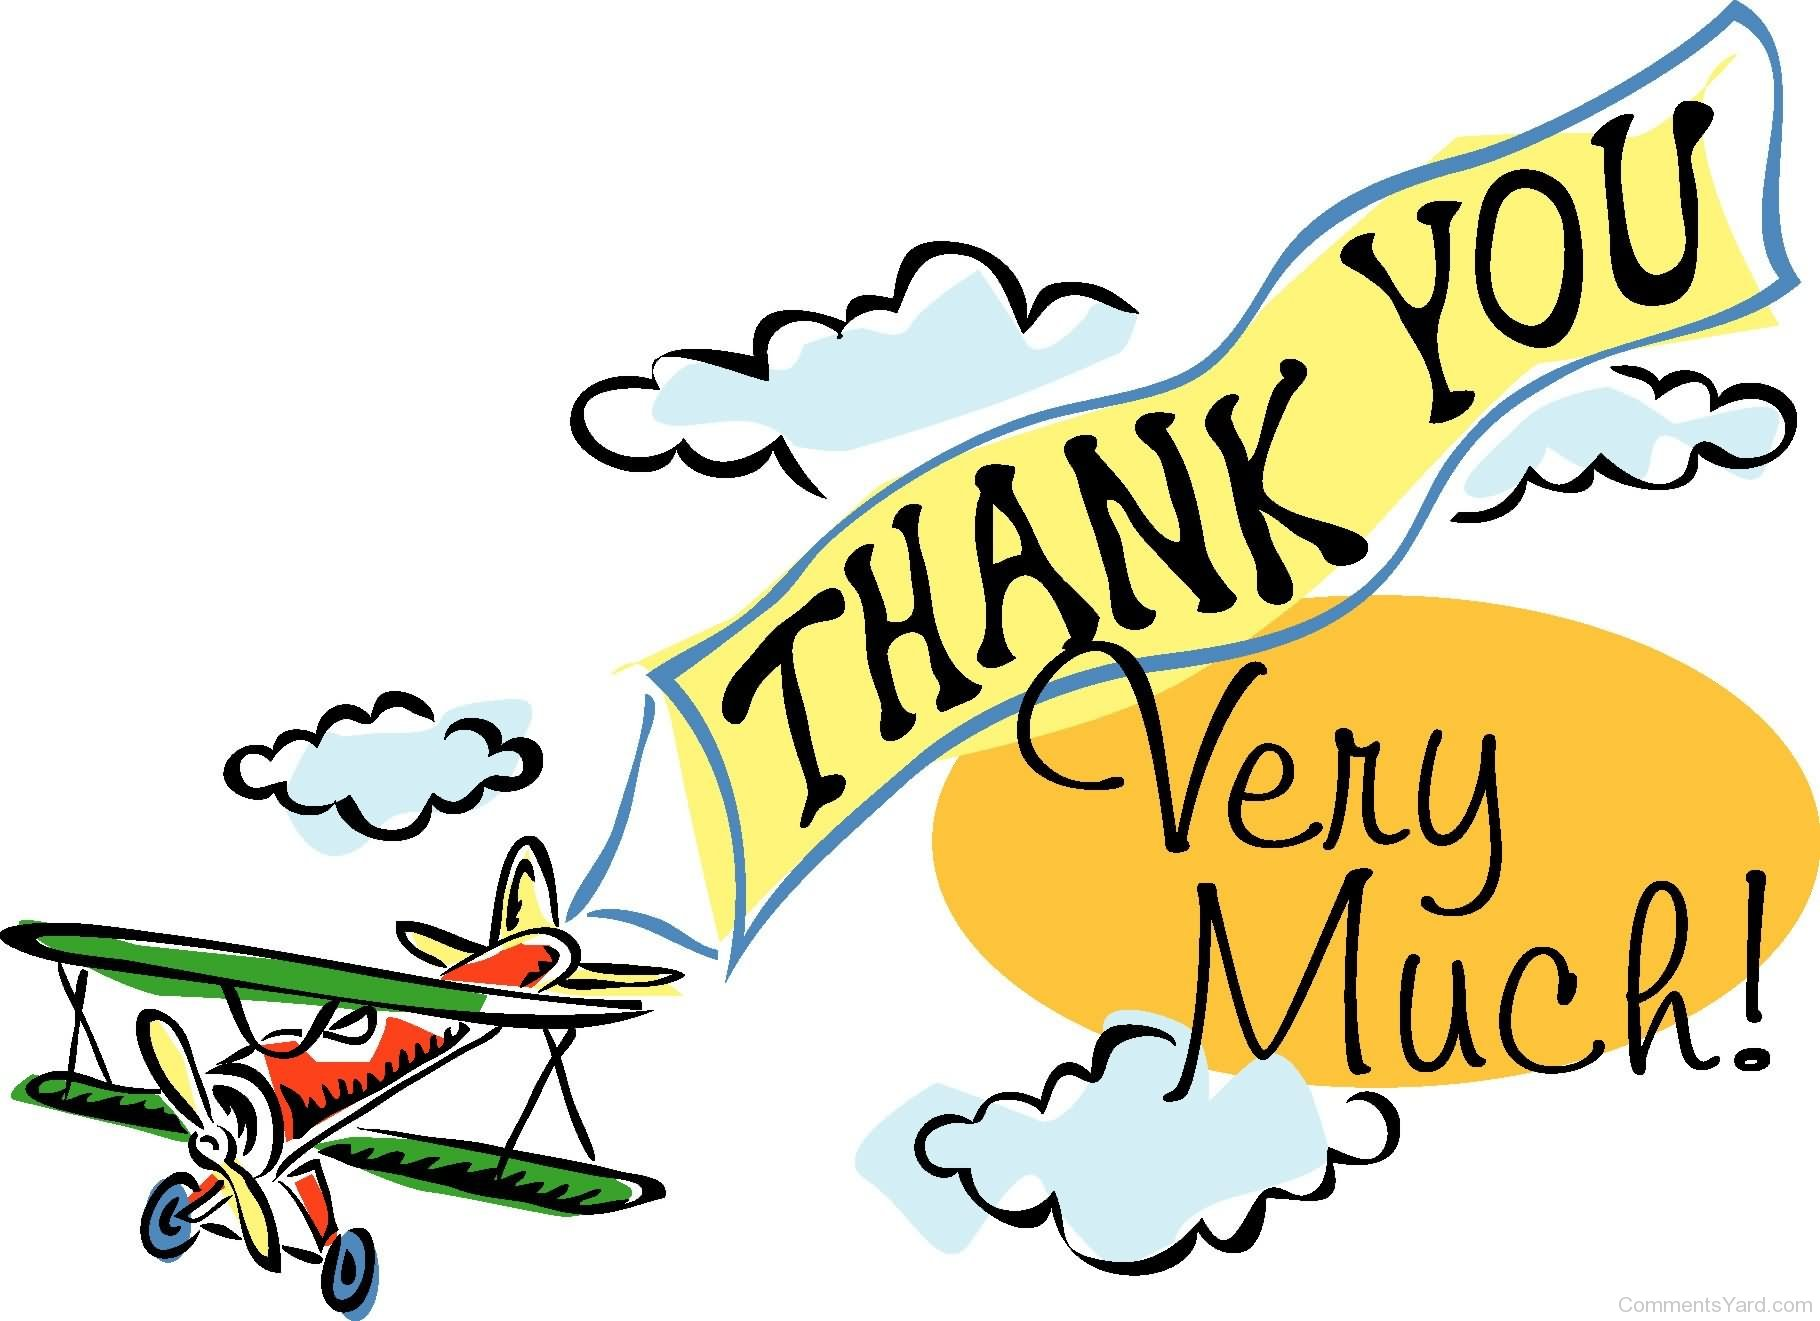 Thank you presentation PNG Transparent Image.